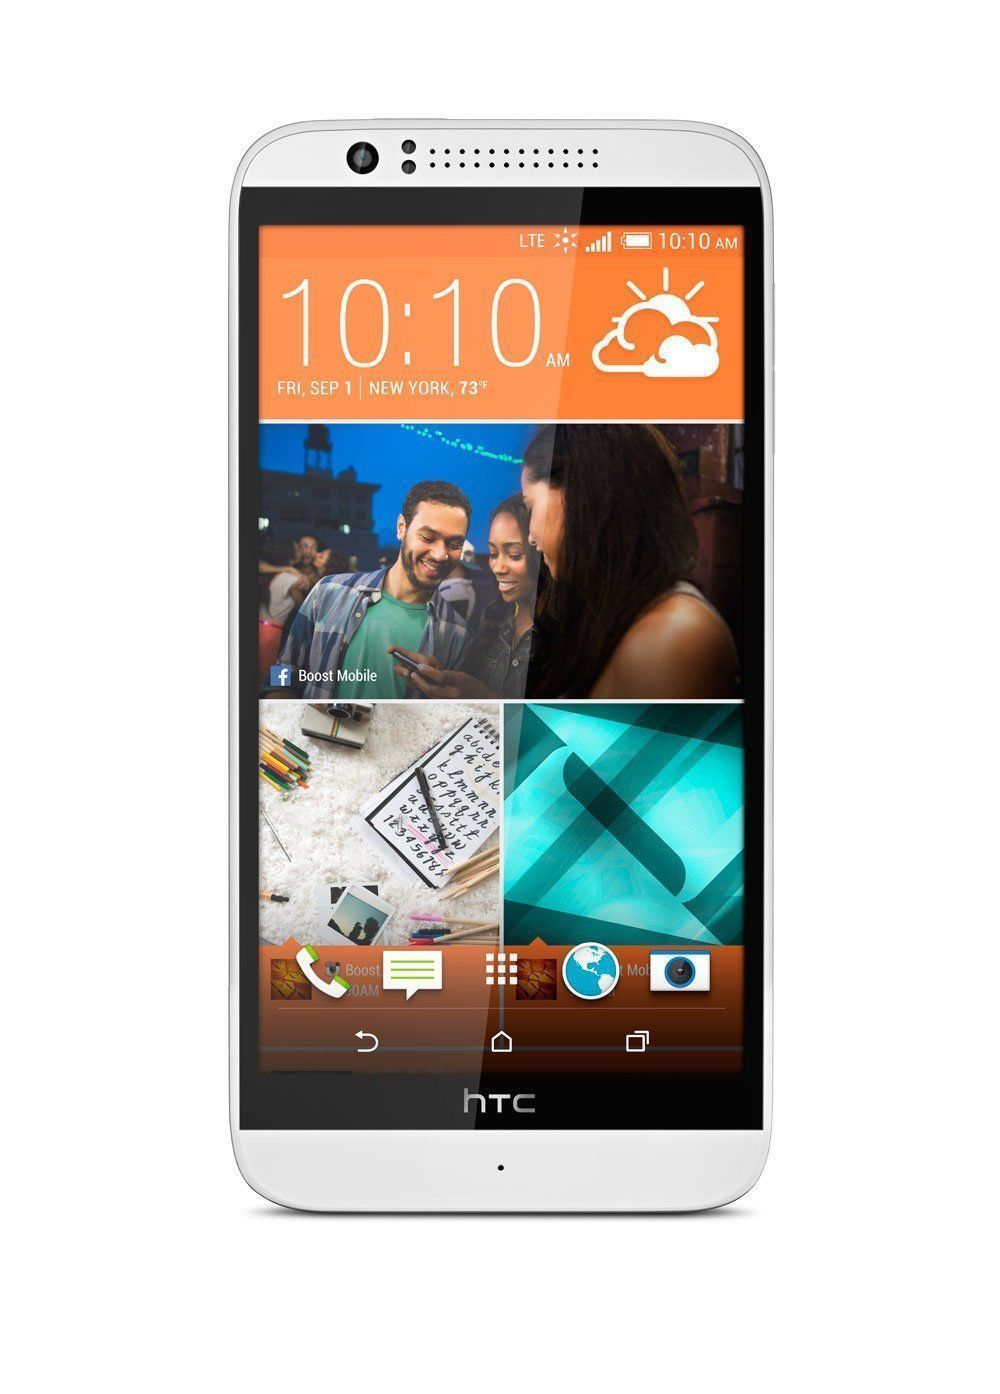 HTC Cell Phone/Smart Phone DESIRE 510